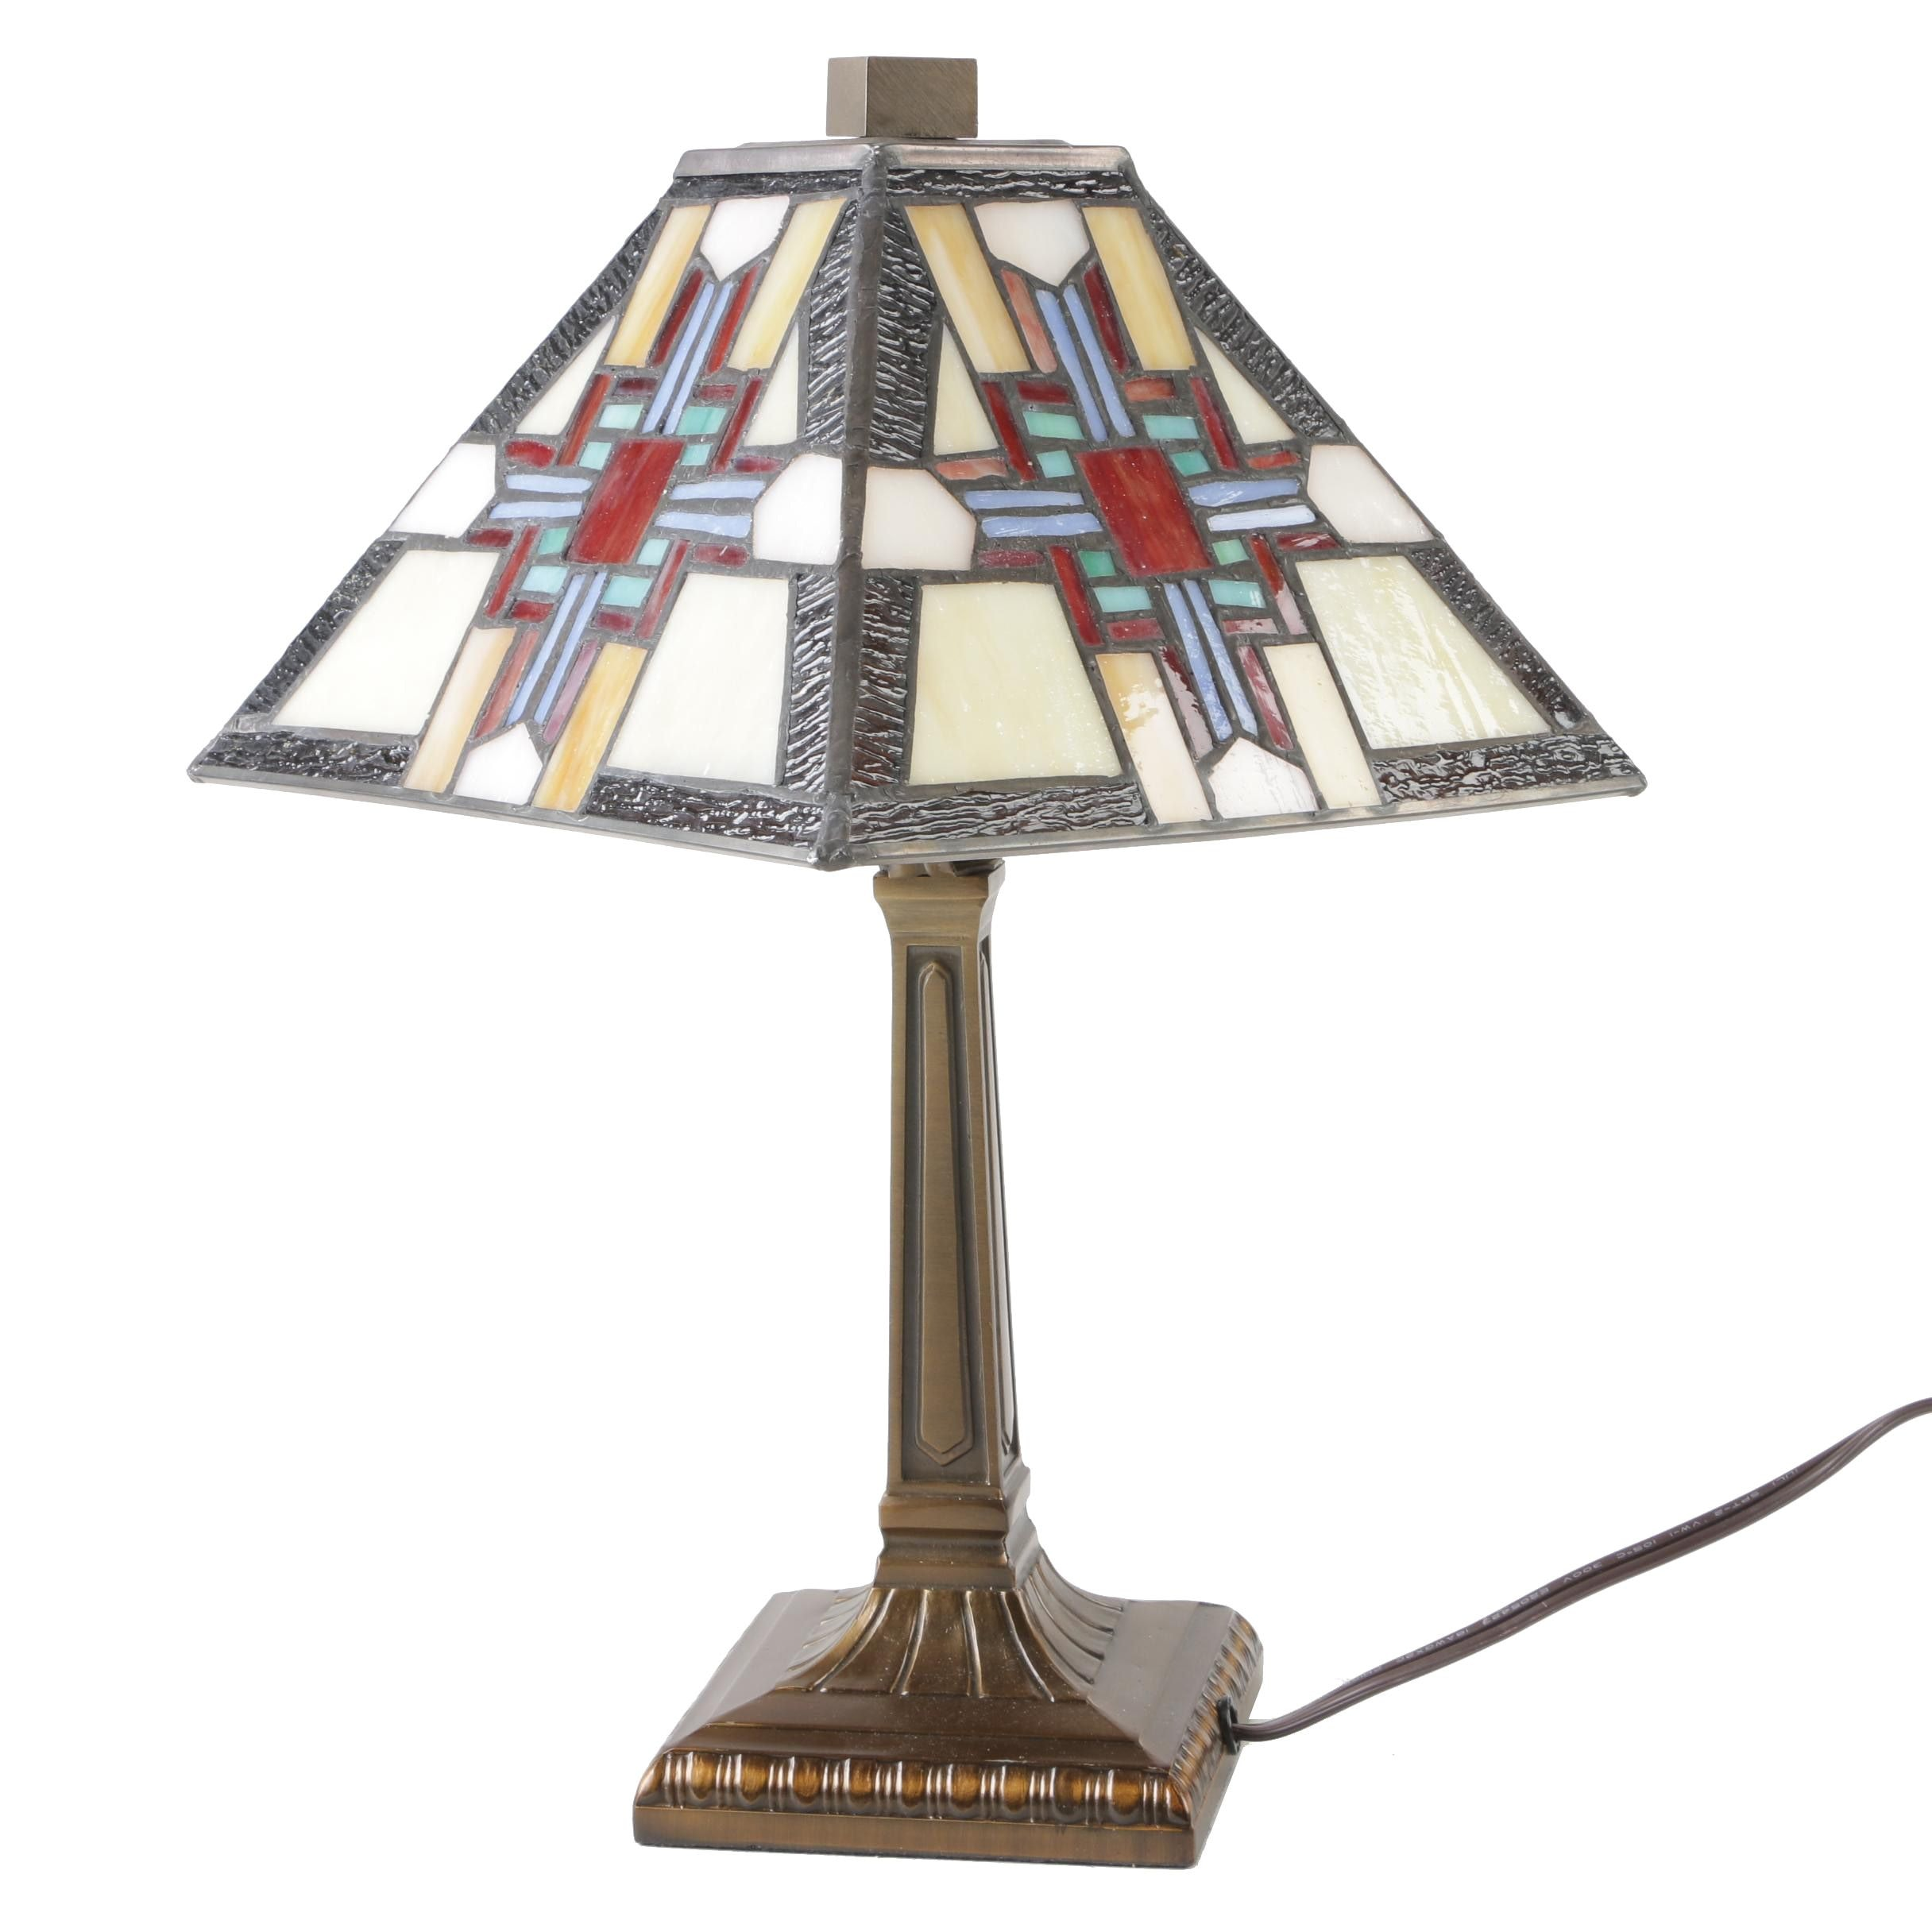 Dale Tiffany Inspired Stained Glass Table Lamp